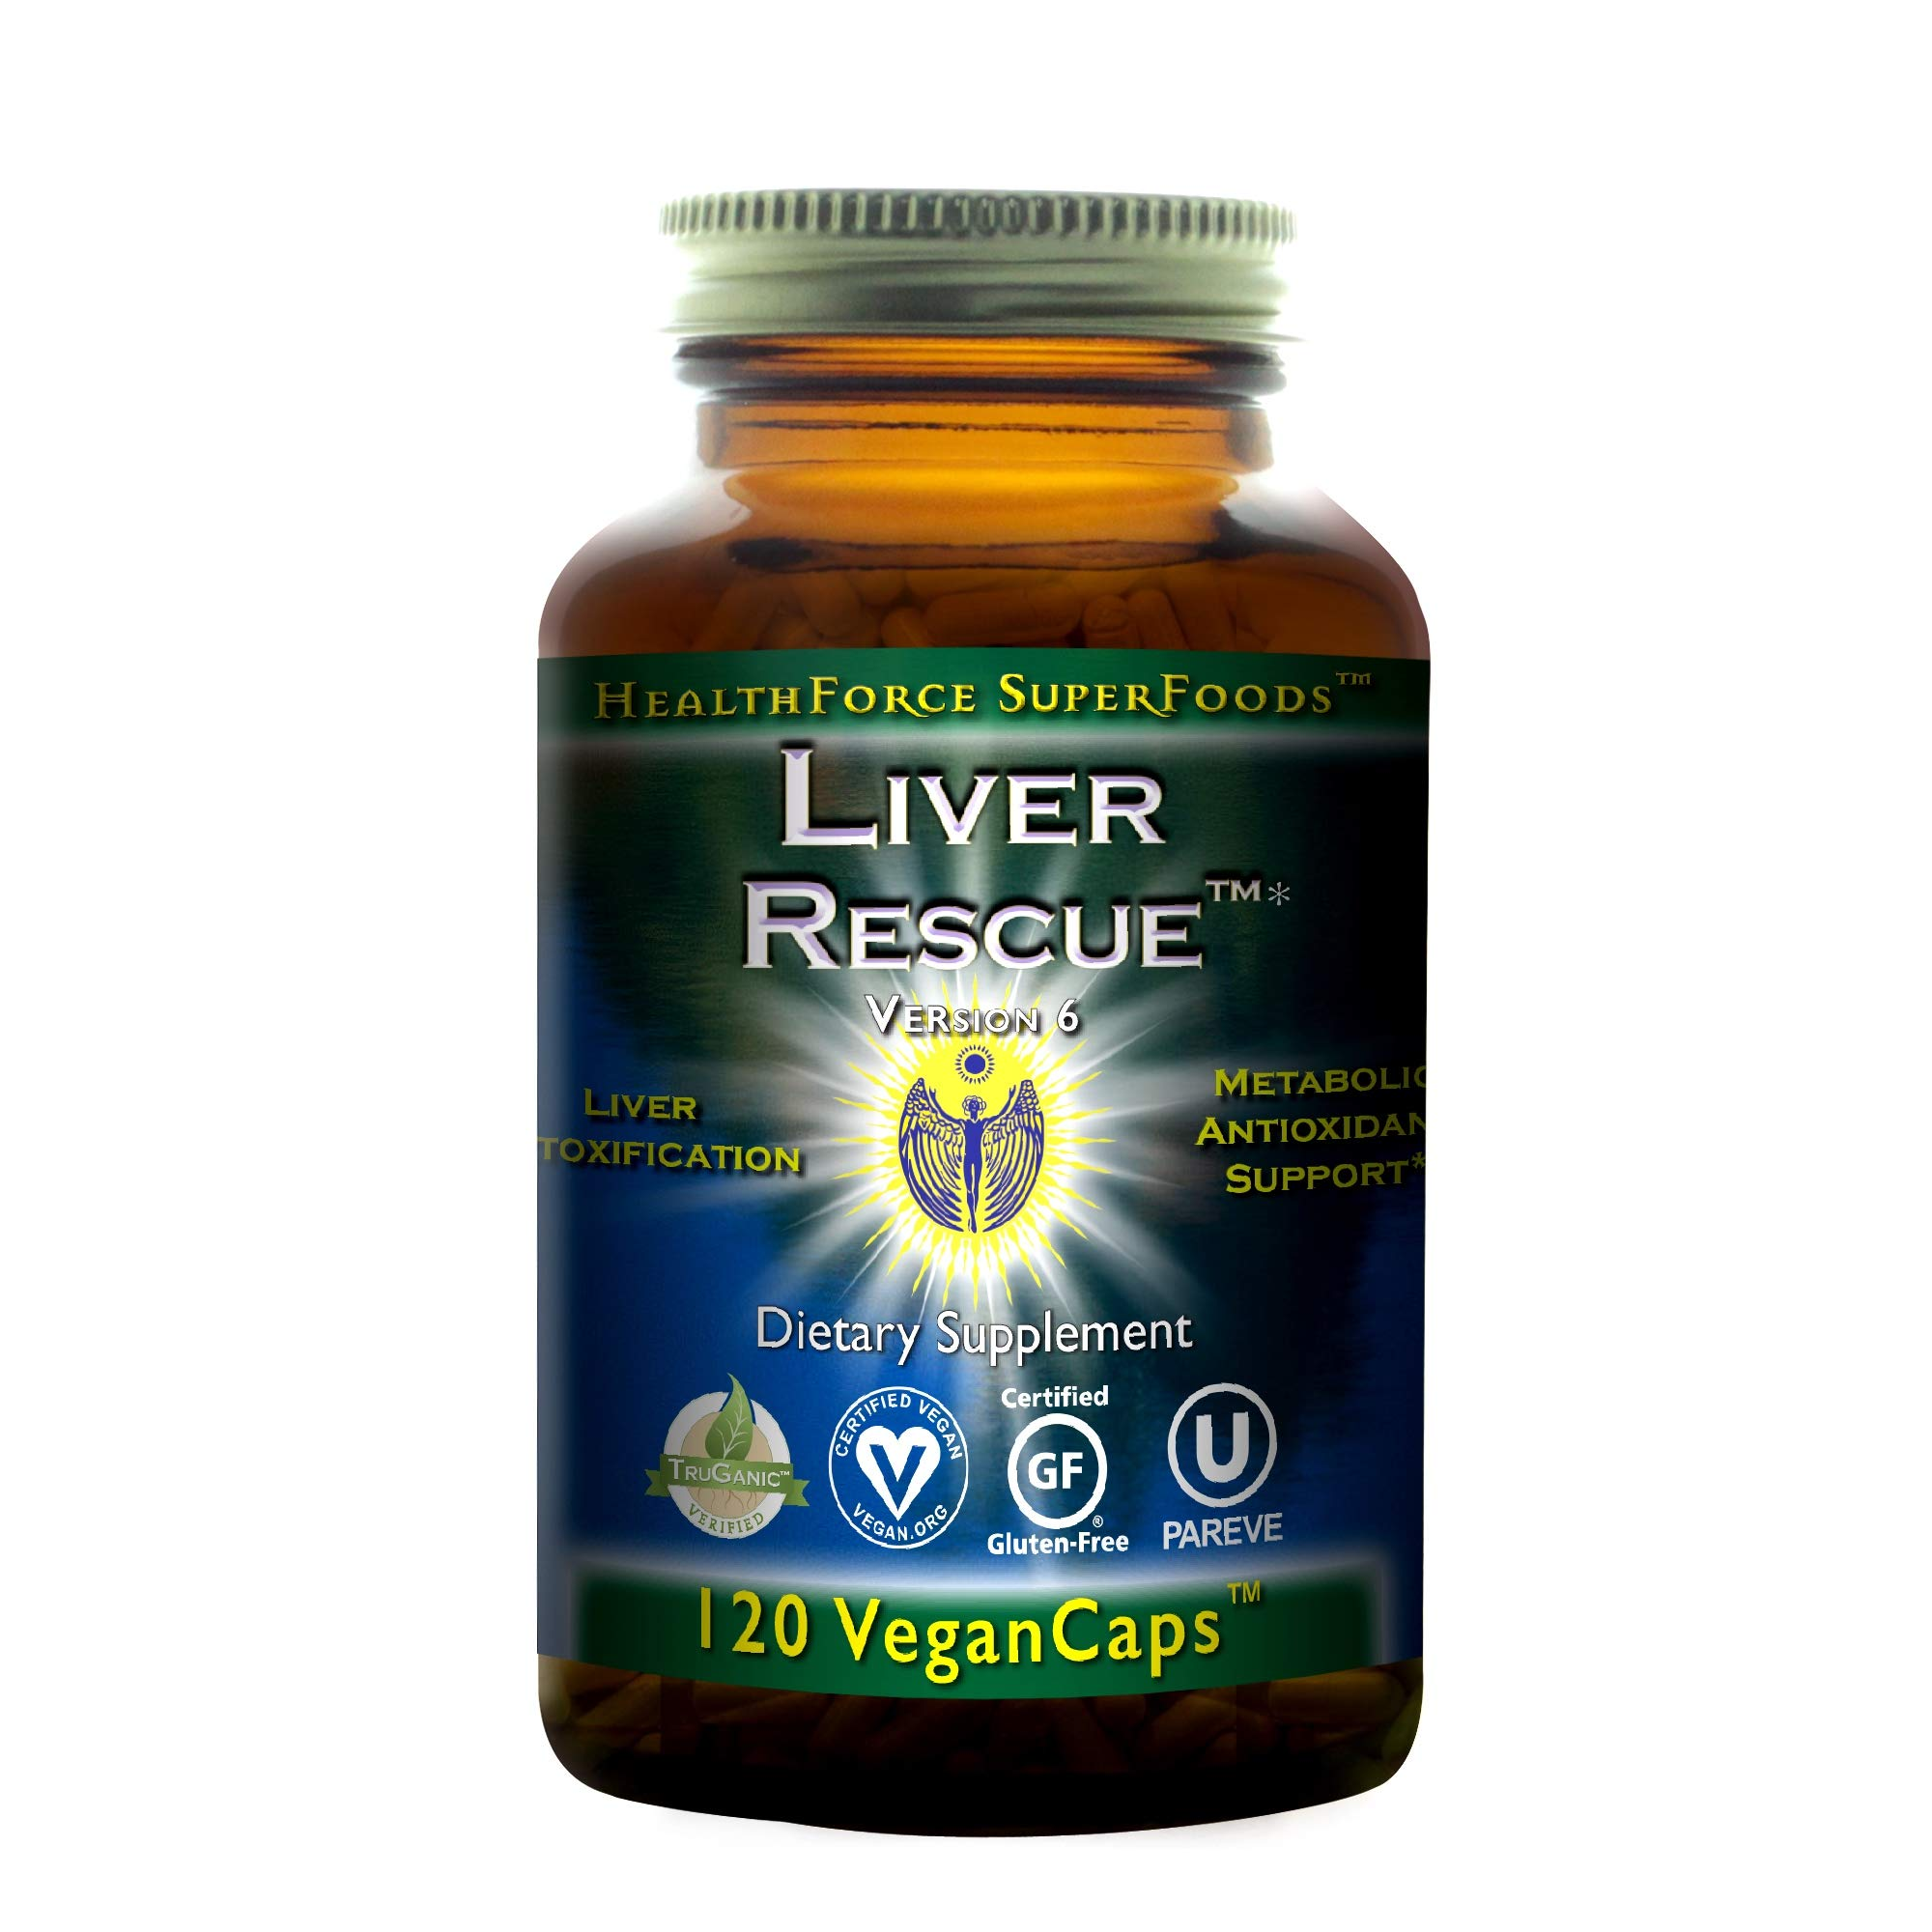 HealthForce SuperFoods Liver Rescue - 120 Vegan Capsules - All Natural Liver Detoxifier & Regenerator Supplement